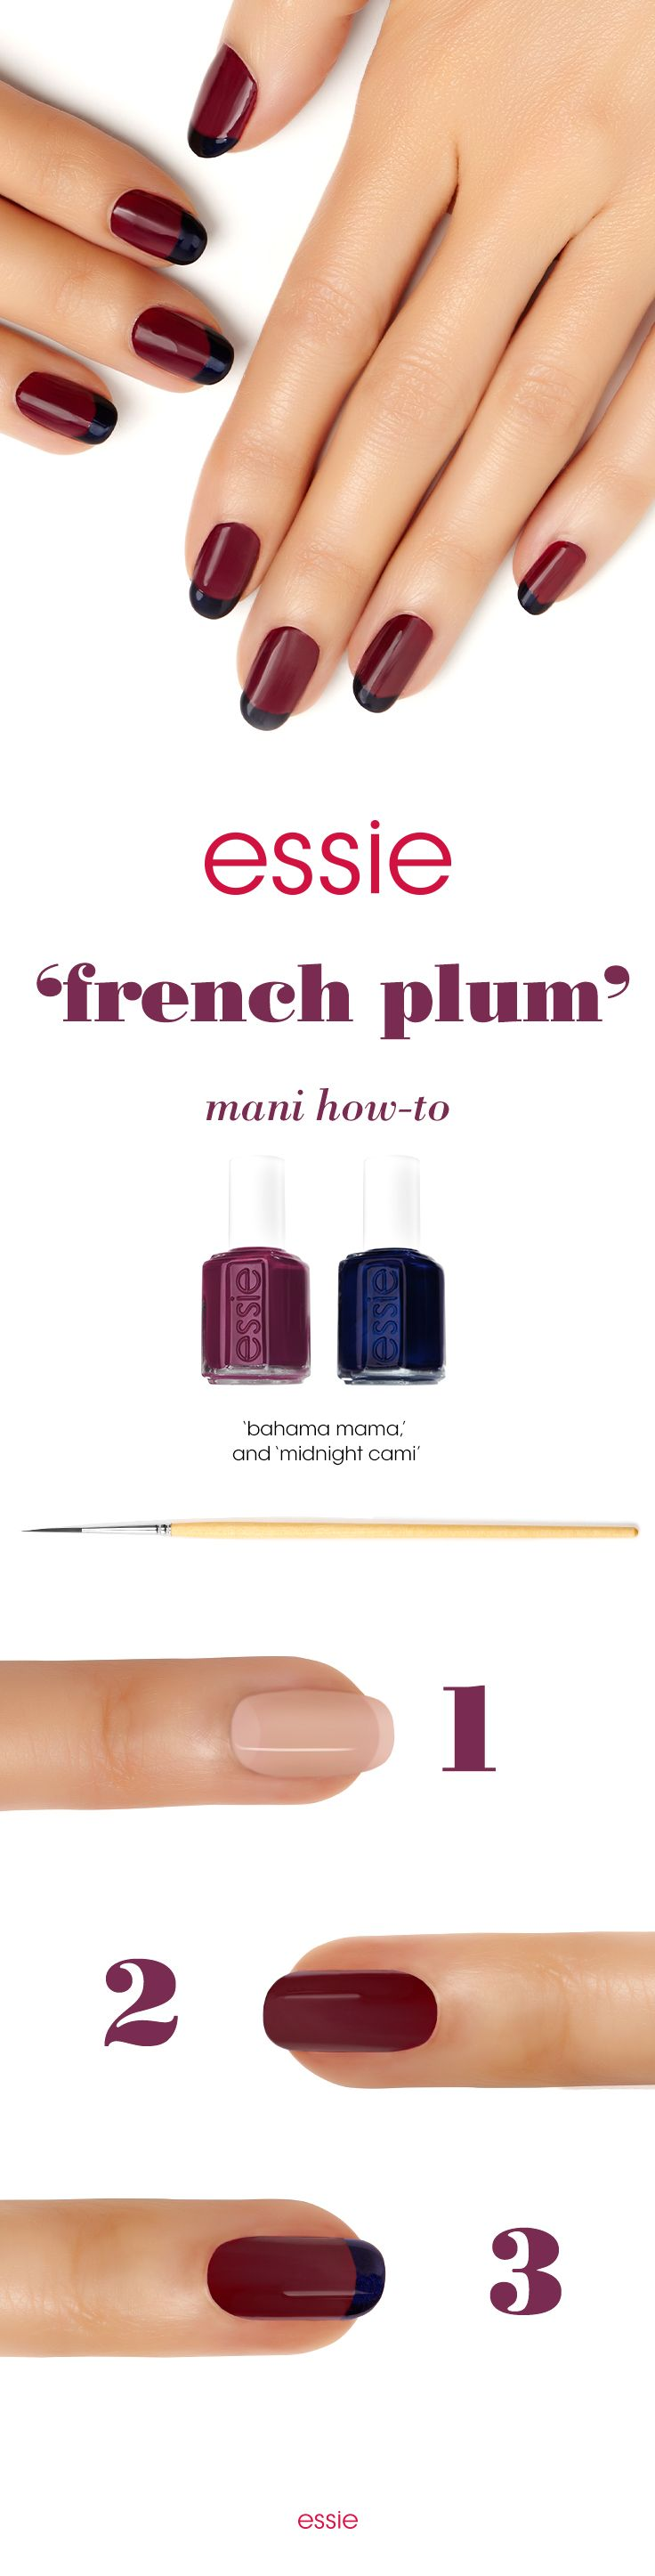 Ah oui, how about a french plum mani that comes with a contrast? Here's an unexpected combination that's sure to delightfully surprise you. Start by apply any essie base coat. Follow it up with 2 coats of 'bahama mama'. Next apply a wide stroke of 'midnight cami' to the tip. Finish off with a top coat. Voila!